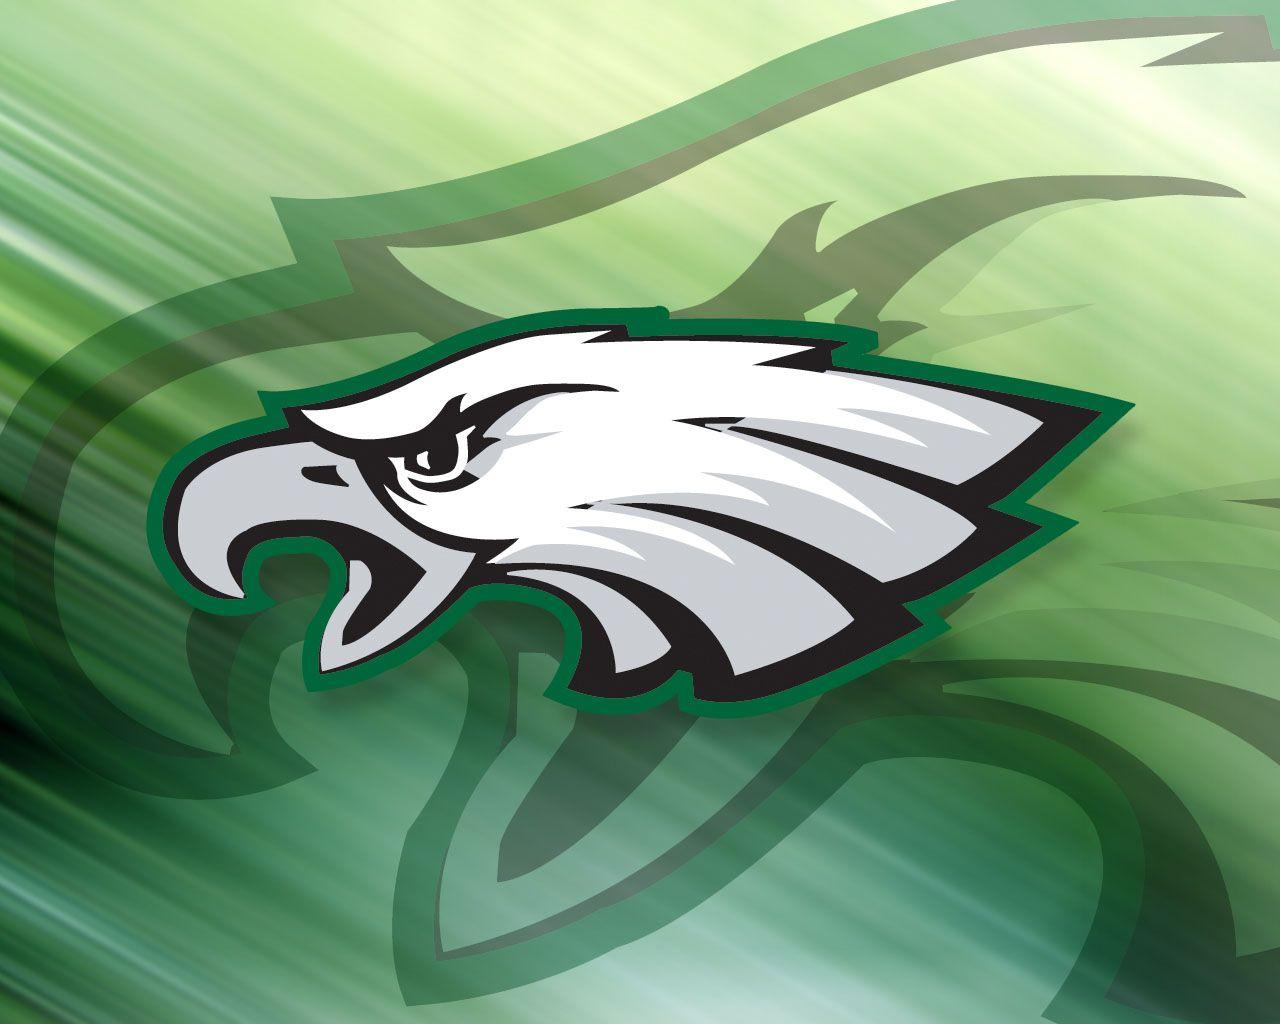 wallpaper eagles logo - photo #3